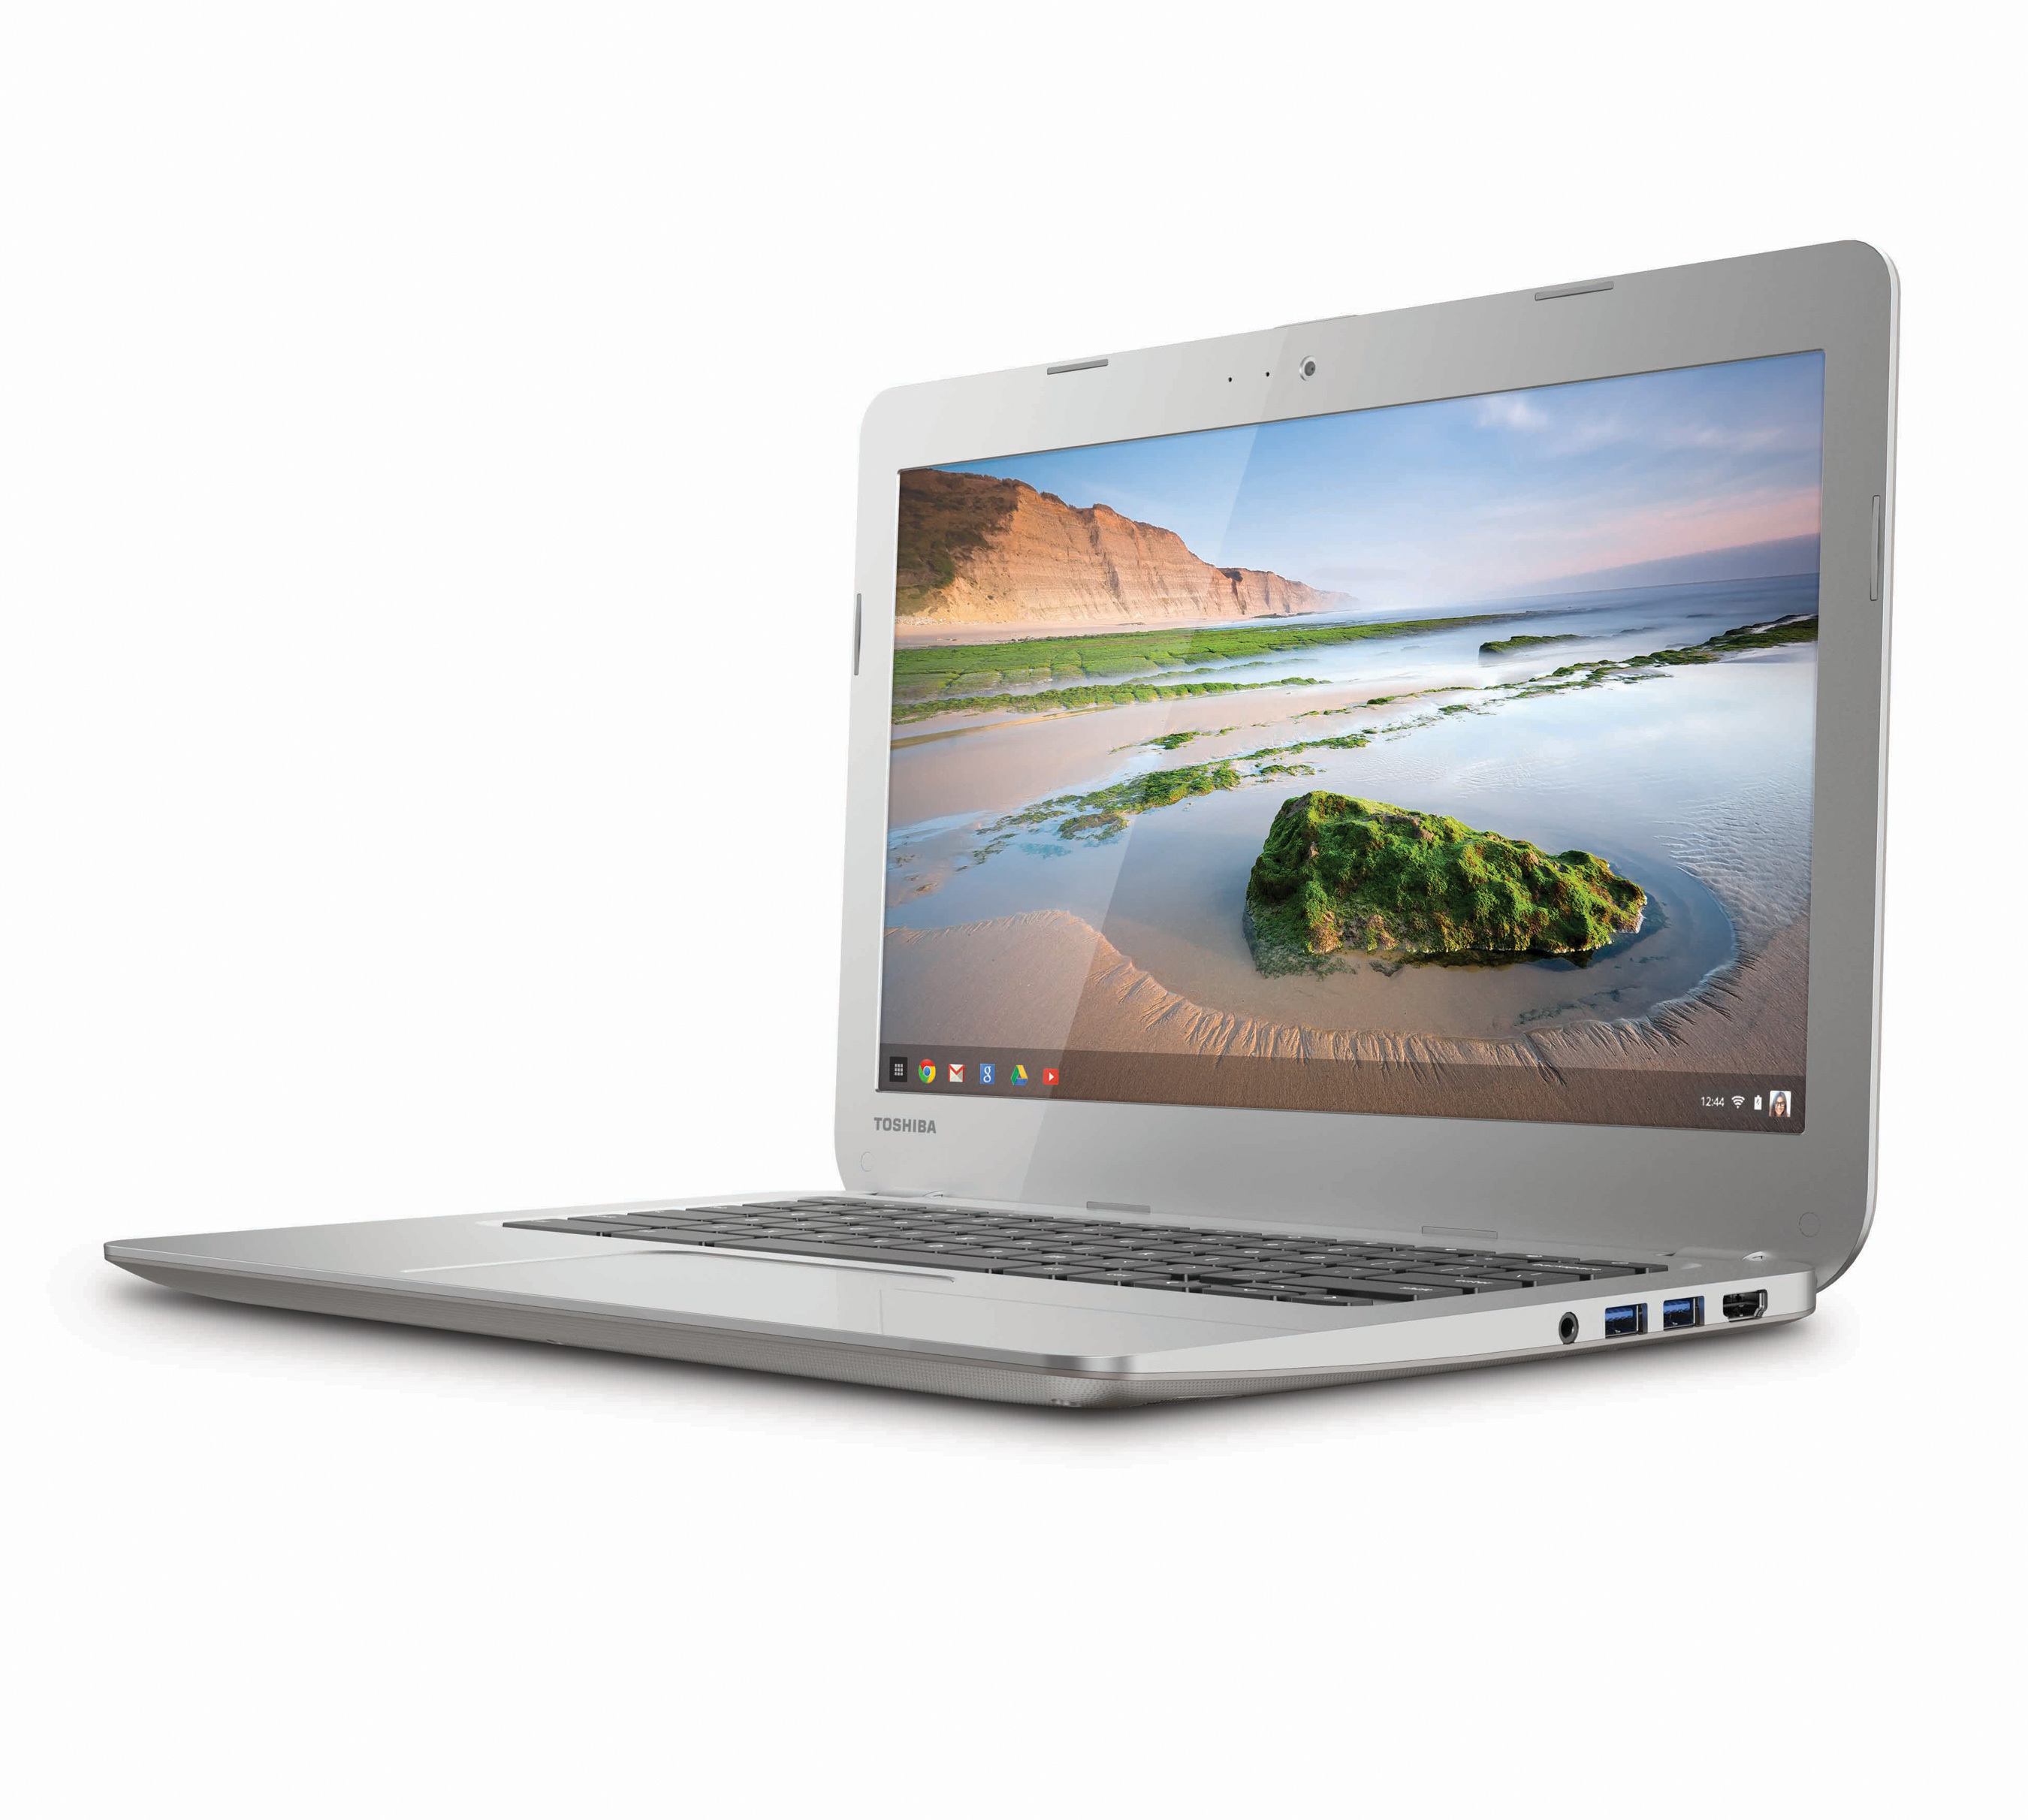 Google previews Android apps running on Chromebooks - The Next Web